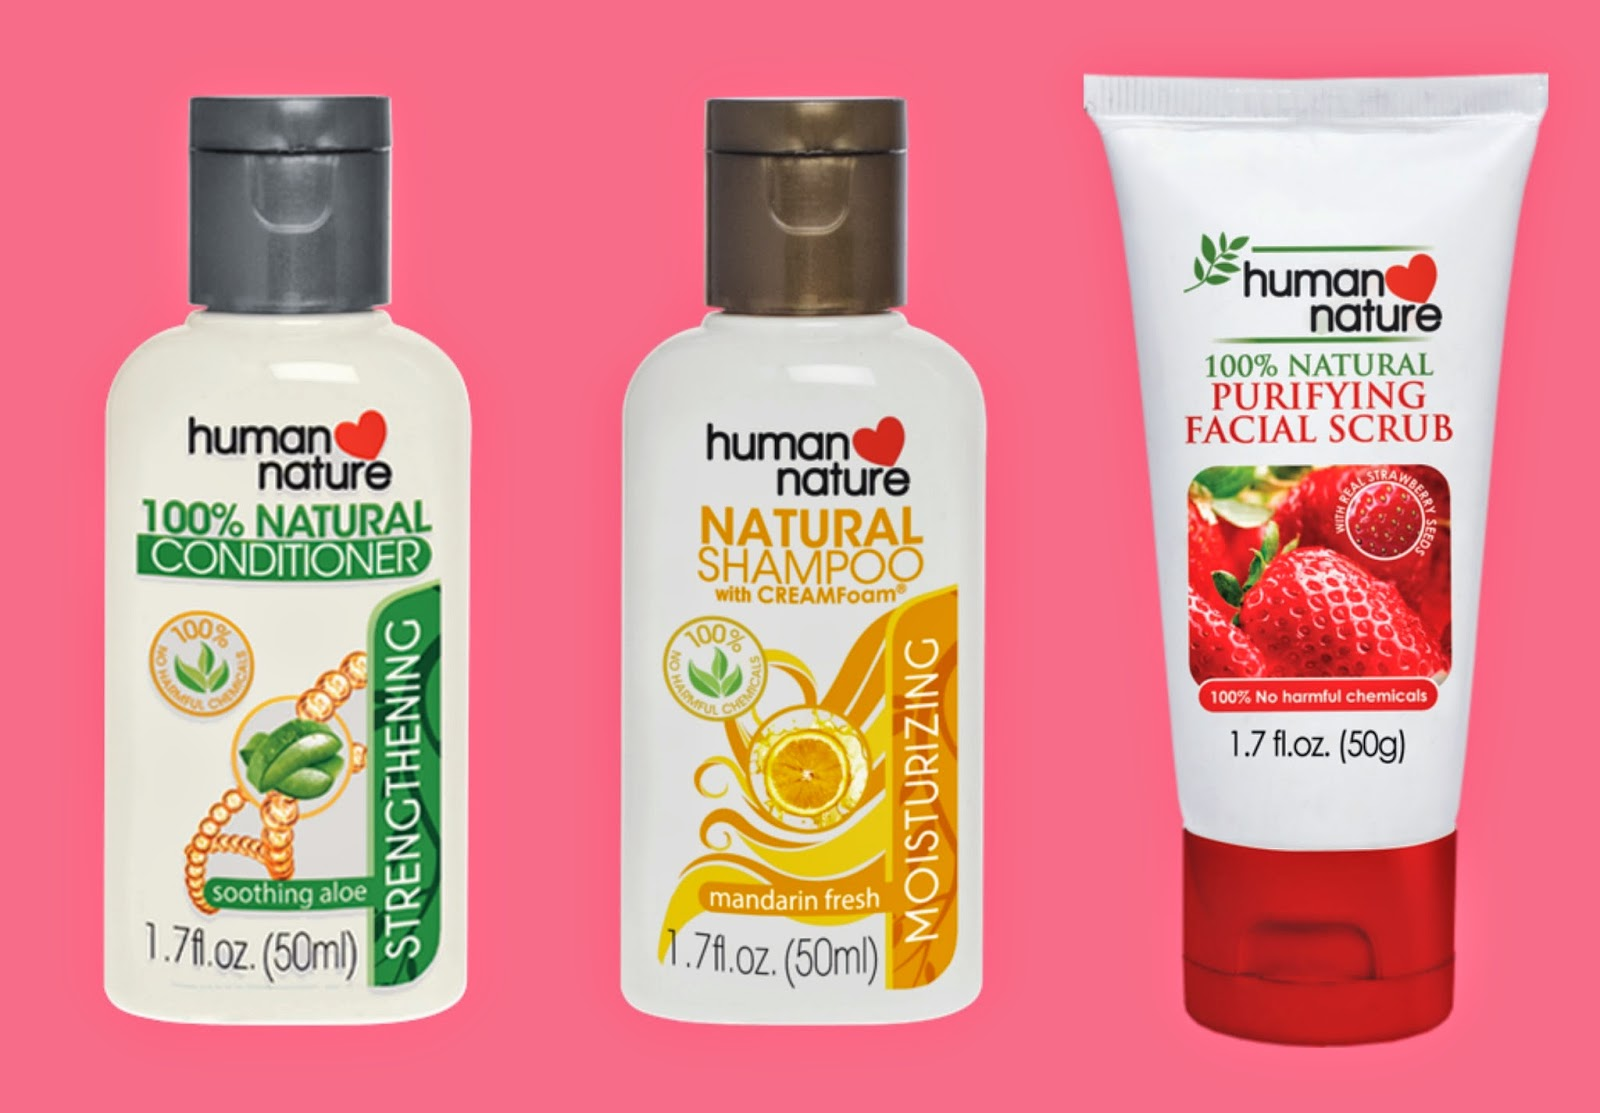 human nature natural shampoo